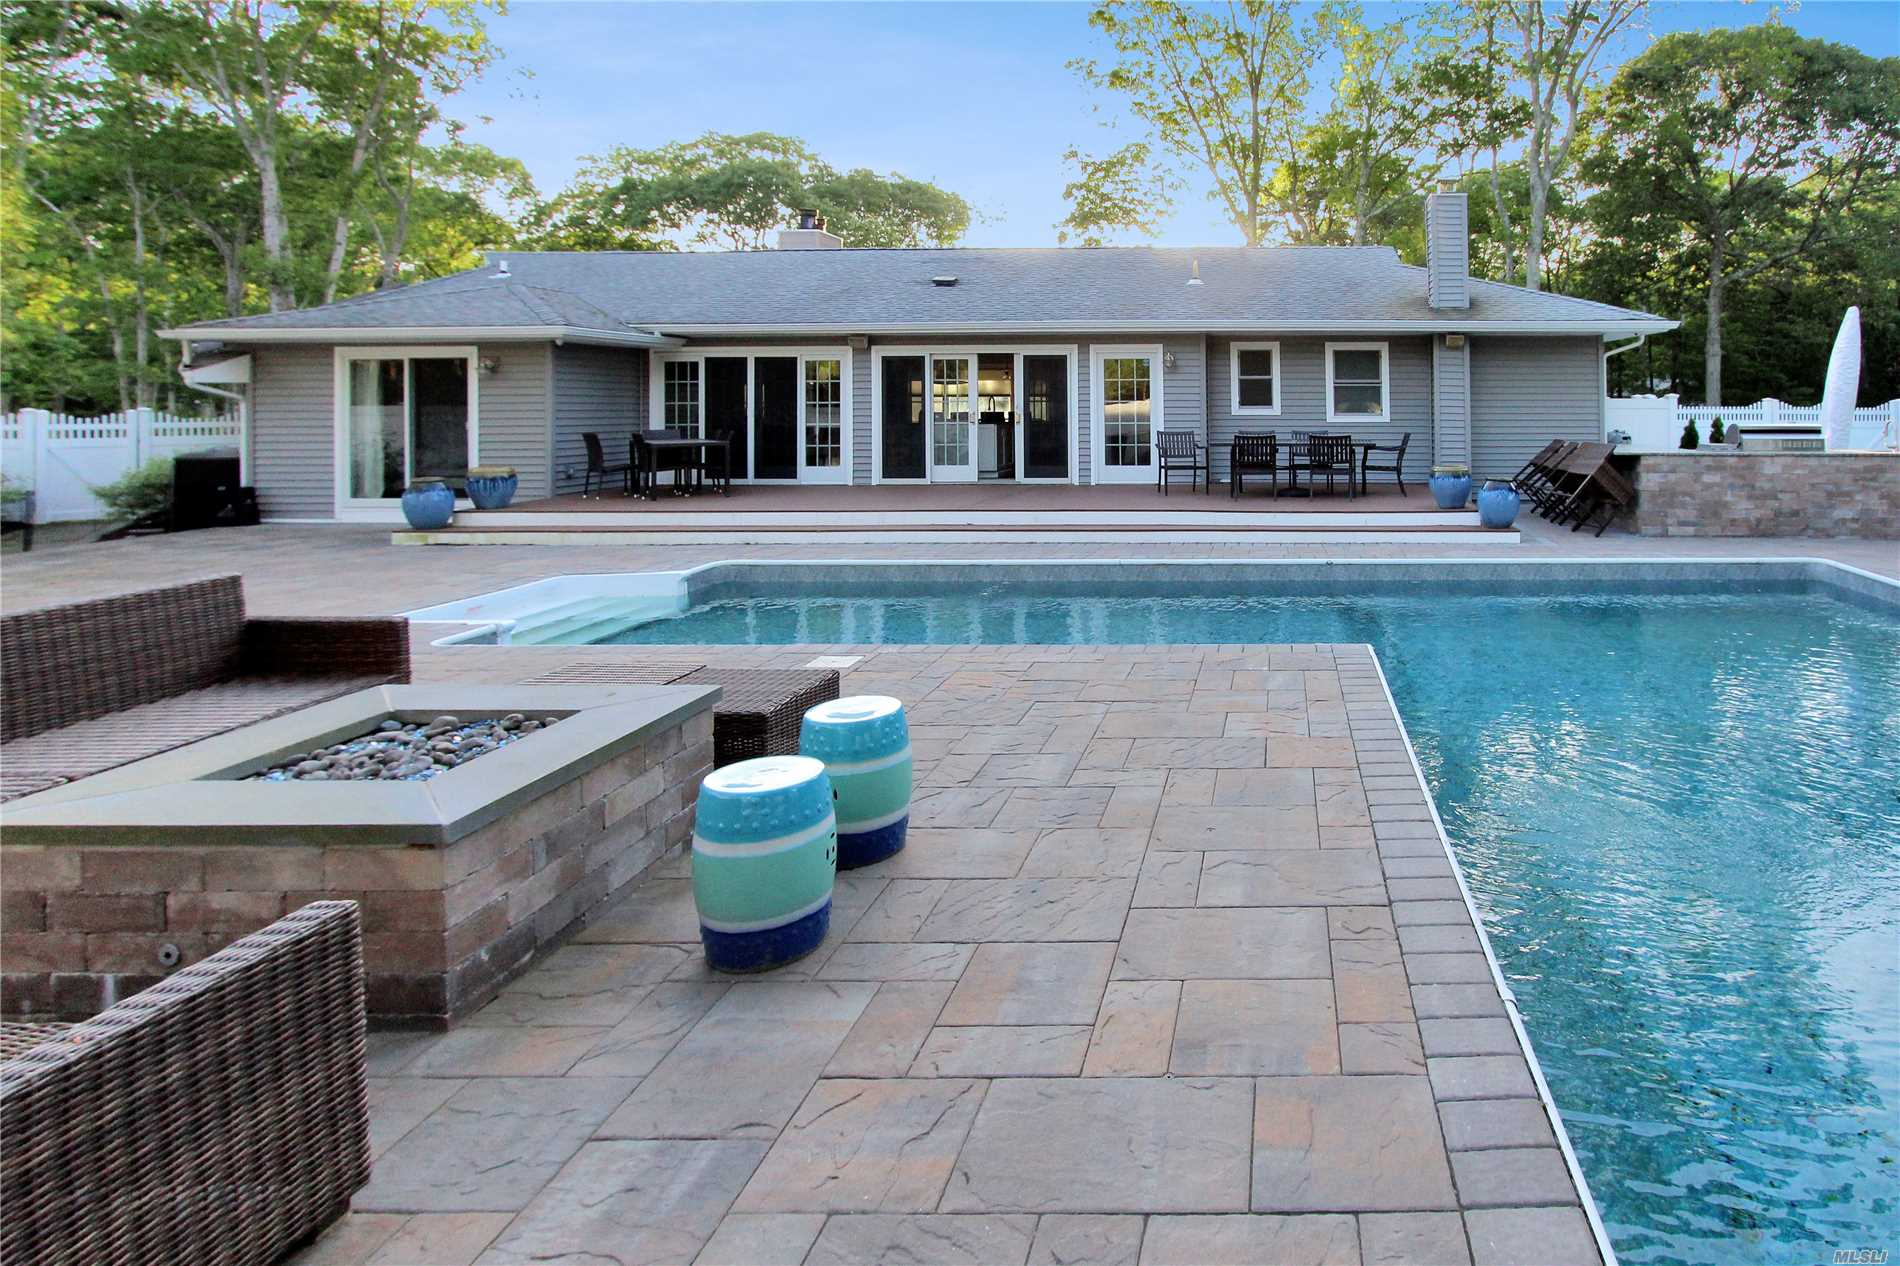 Come Enjoy This First To Market Beautiful Remodeled 5-Bedroom, 3 Bath Spacious Interior Home With An Elegant And Modern Kitchen, Large Center Island, Complete With A Gas-Range Stove. The Sprawling, Open Dining Space Is Designed To Accommodate Groups Large And Small - Plus A Finished Basement. The Entertaining Space Continues Outdoors With A Sweeping Back Patio, Barbeque Station And An Above-Ground, Stone Fire Pit. Unwind Each Evening Next To The Residence's Serene, L-Shaped 20'X50' Ft Pool.